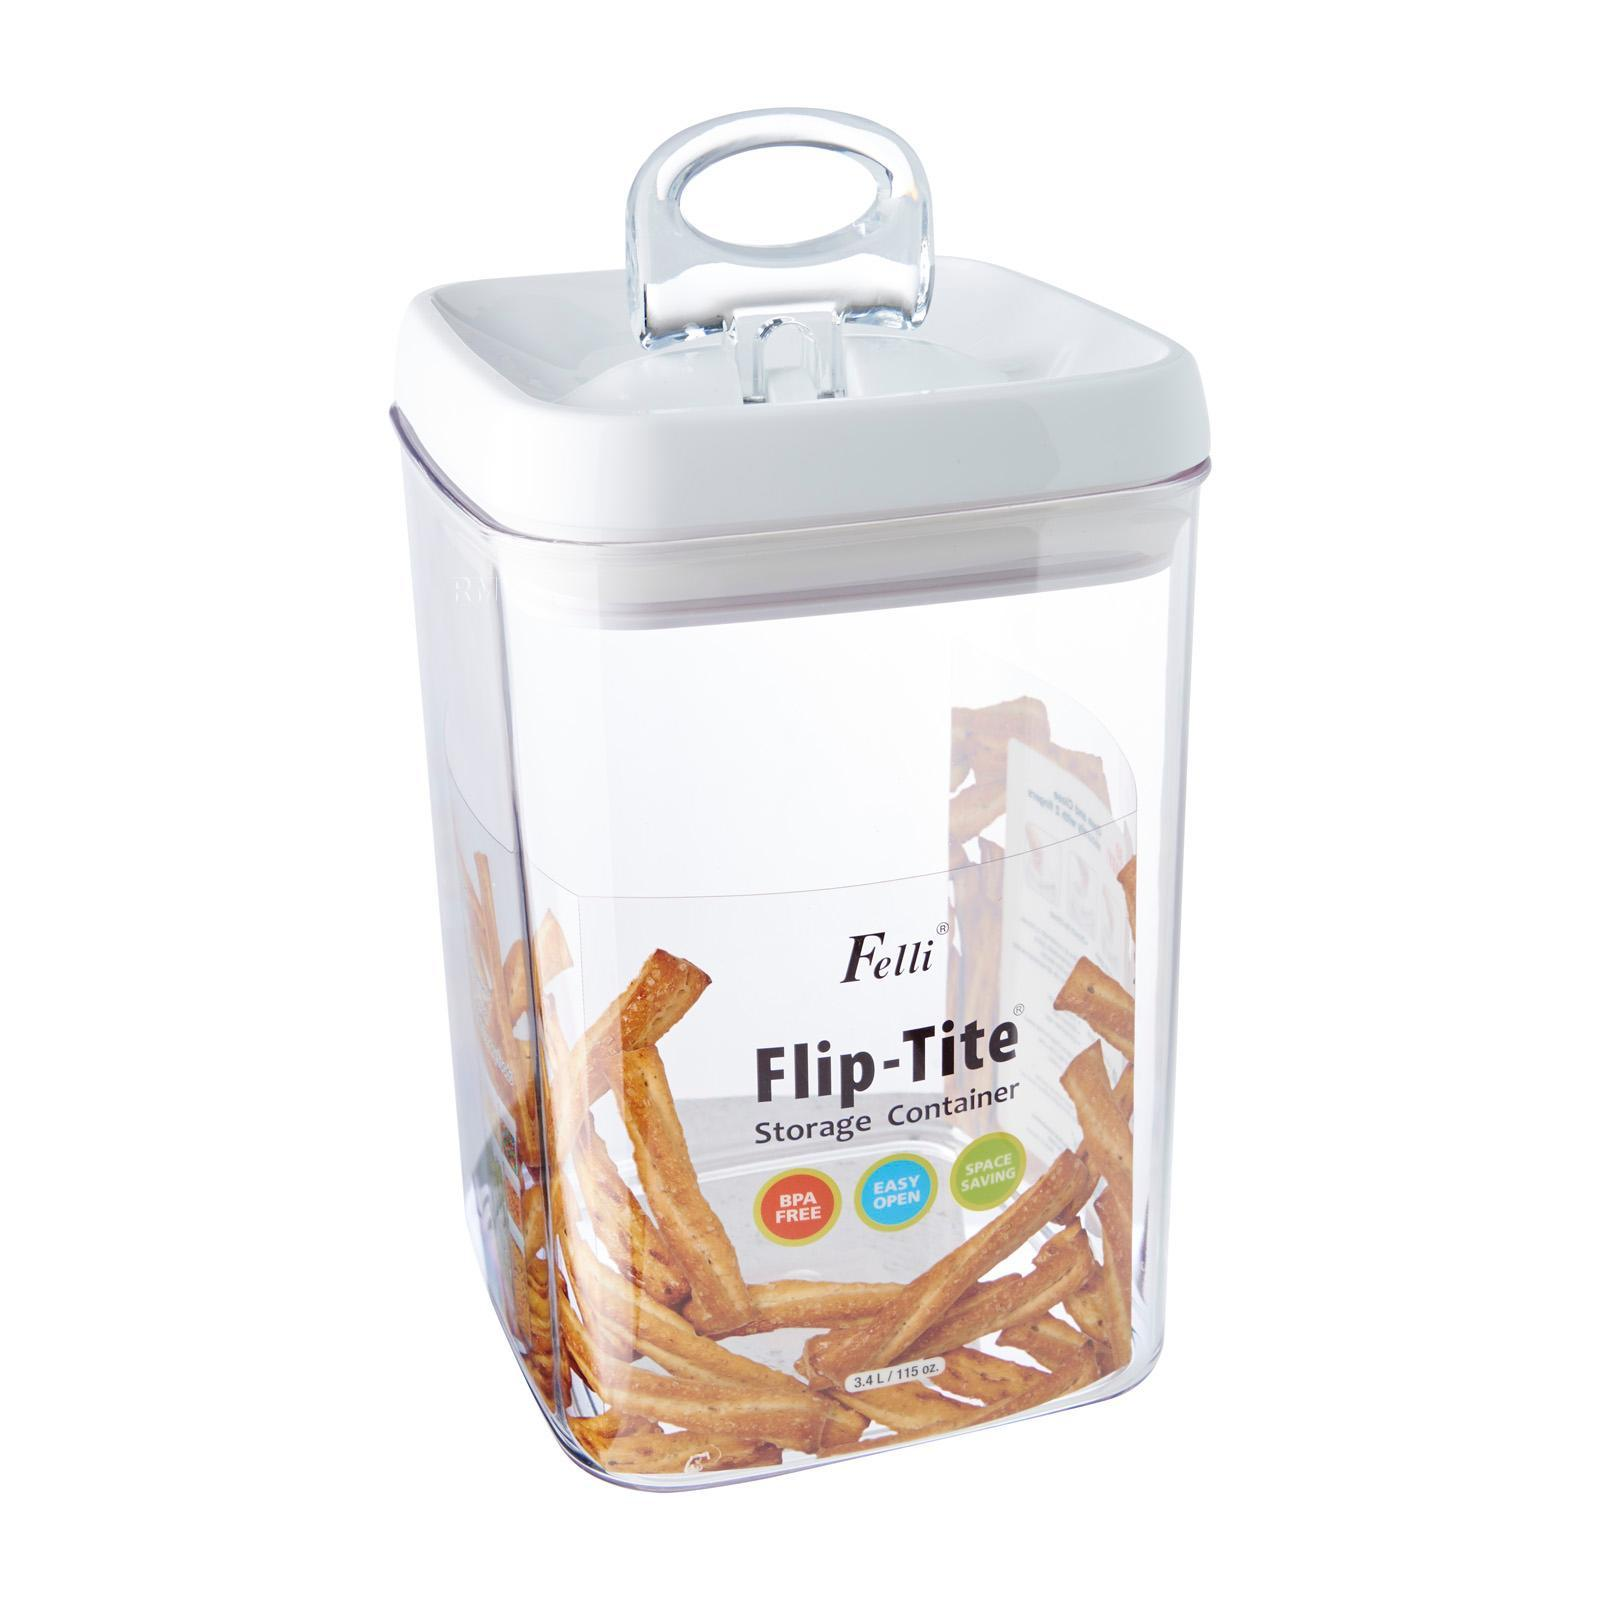 Felli Square Flip Tite Storage Container 3.4 L